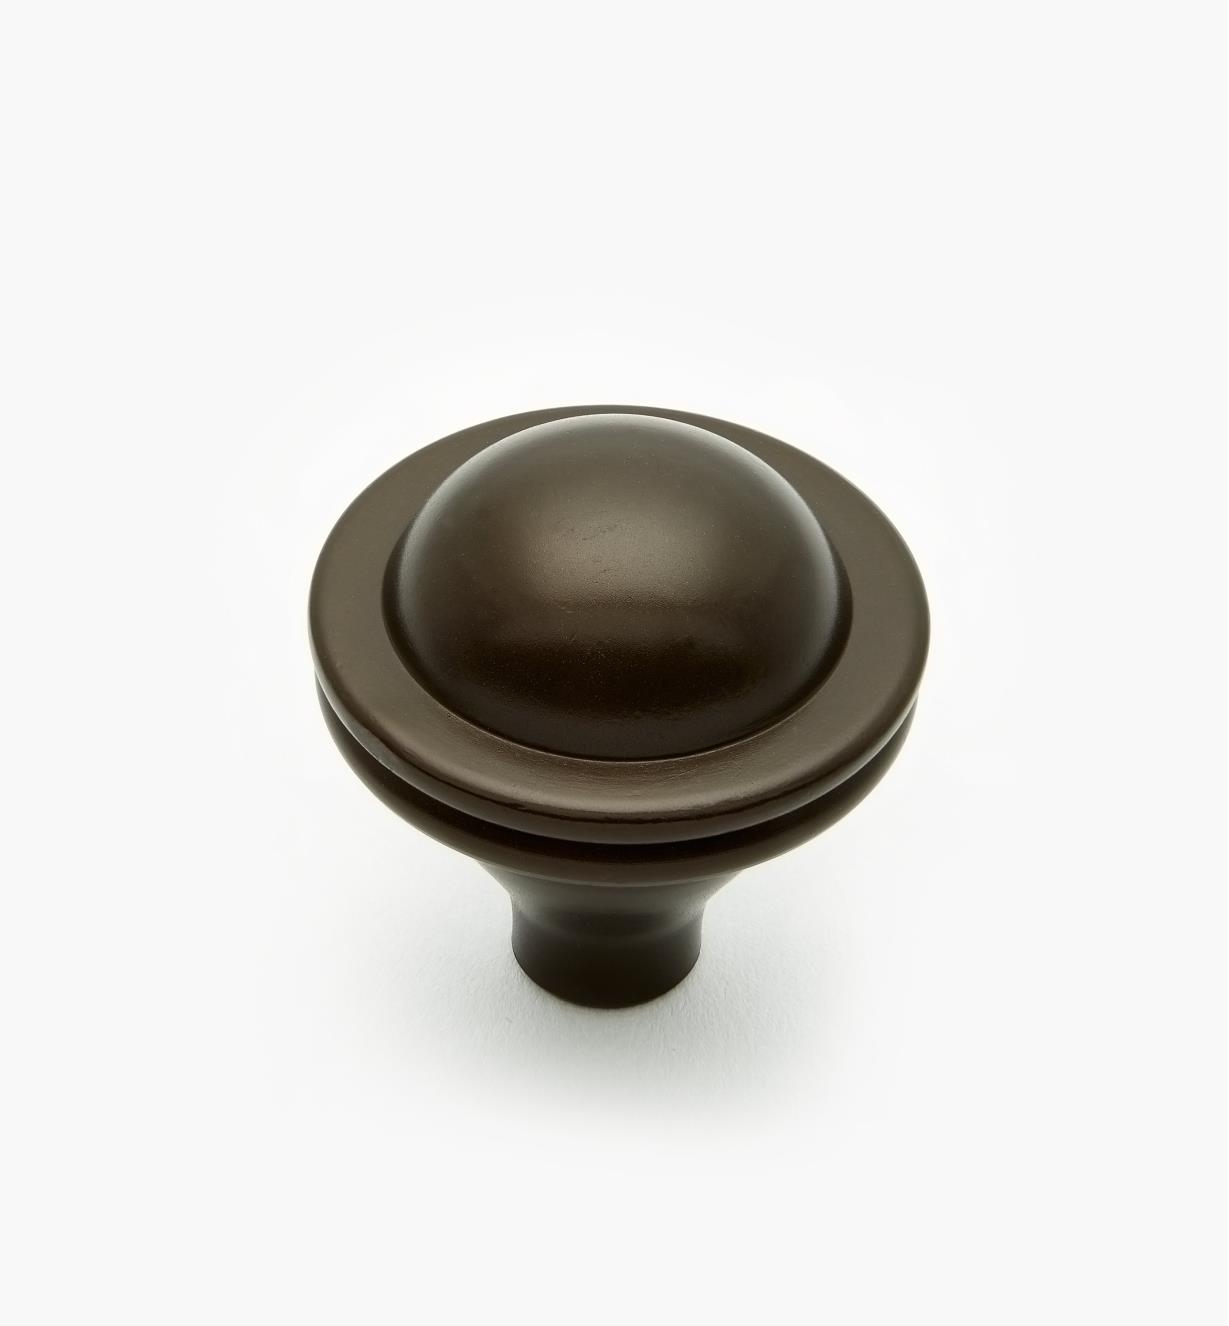 02W4017 - Oil-Rubbed Bronze Knob